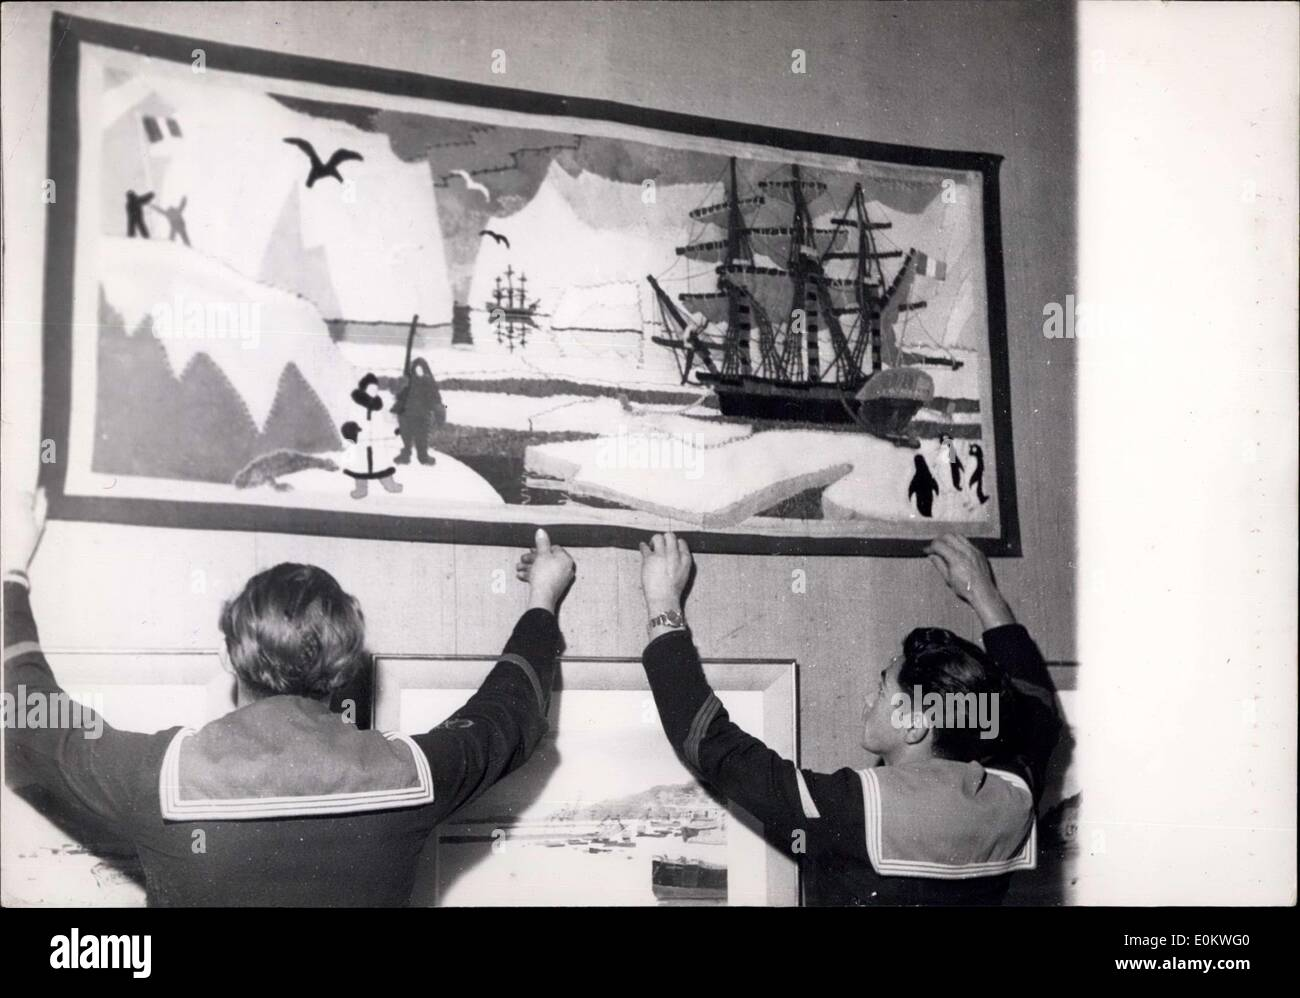 Nov. 15, 1951 - Marine show to open at Musee Galliera: Two young sailors put up a picture showing a French Polar Expedition. This picture together with many other paintings and models will be seen at the Marine Exhibition to open at Musee Galliera, Paris, tomorrow. - Stock Image